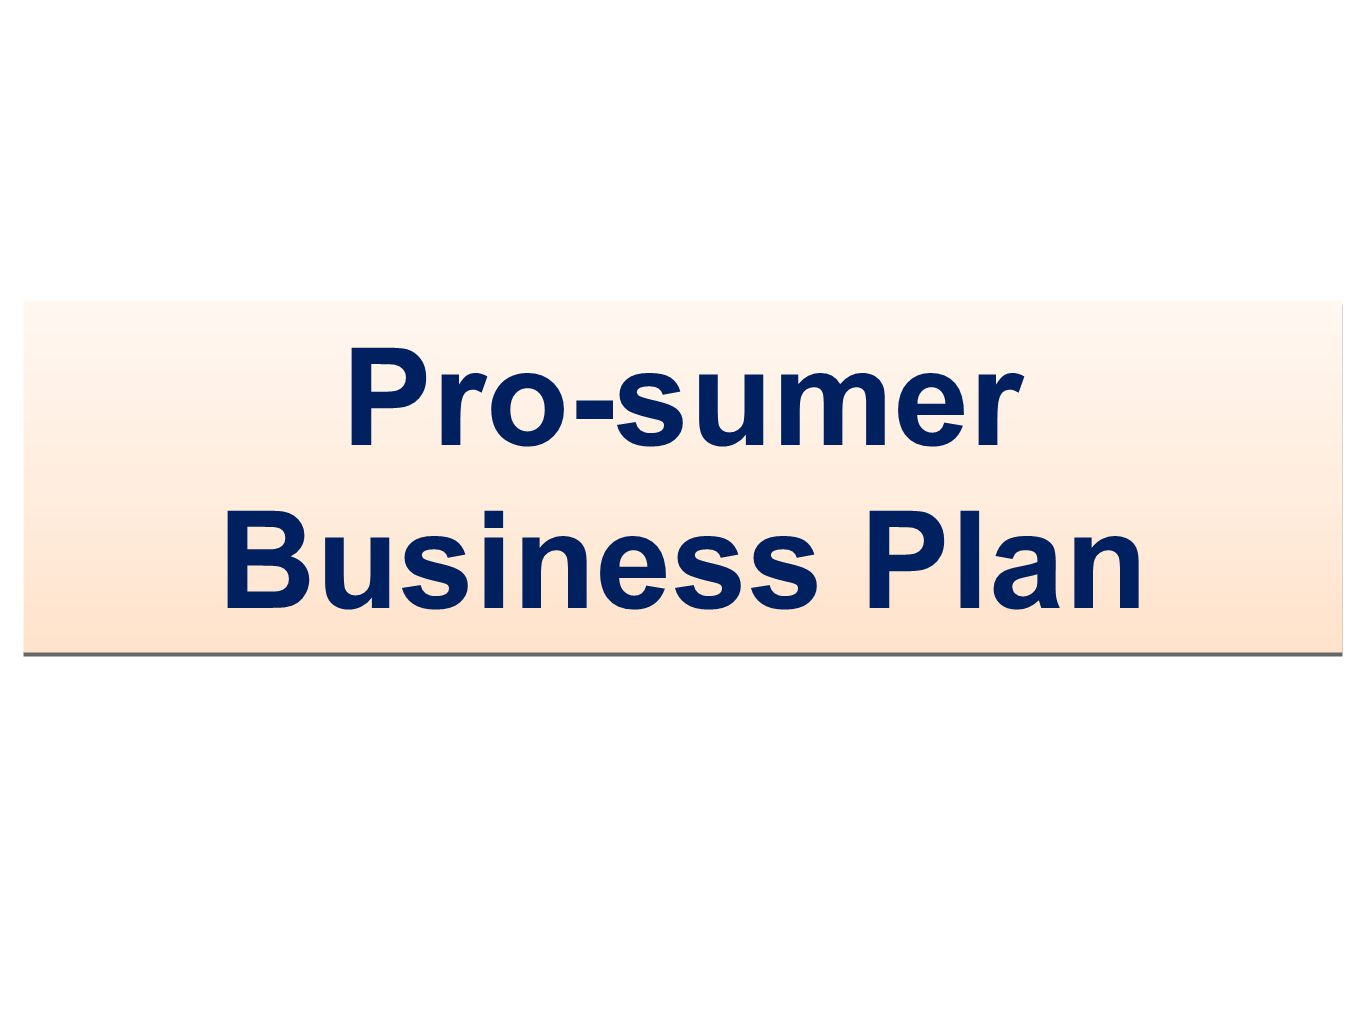 Pro-sumer Business Plan